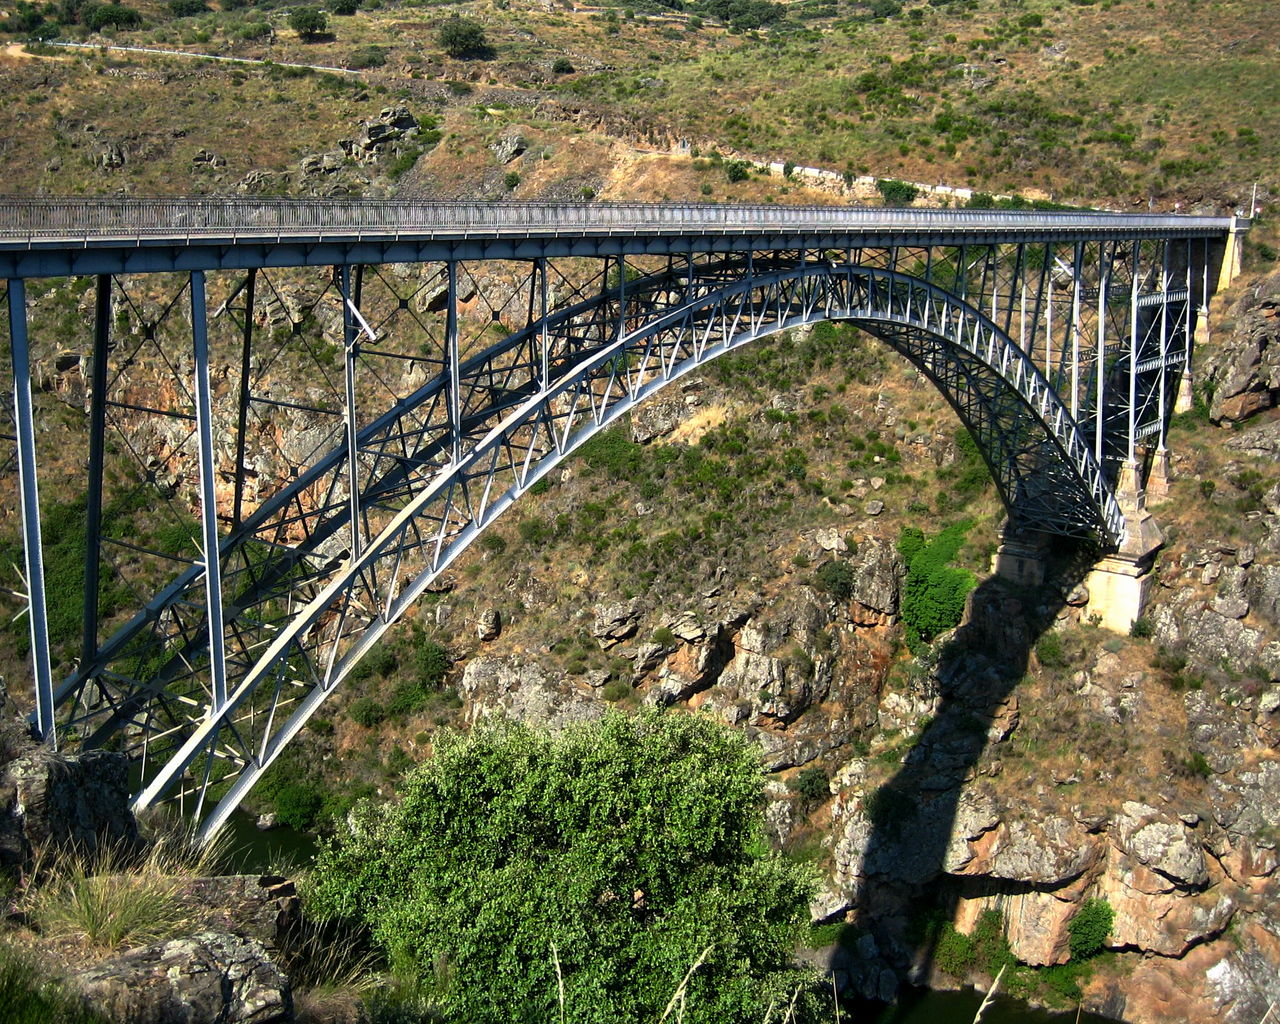 bridge - man made structure, connection, arch, transportation, built structure, day, high angle view, architecture, railing, river, outdoors, nature, no people, landscape, tree